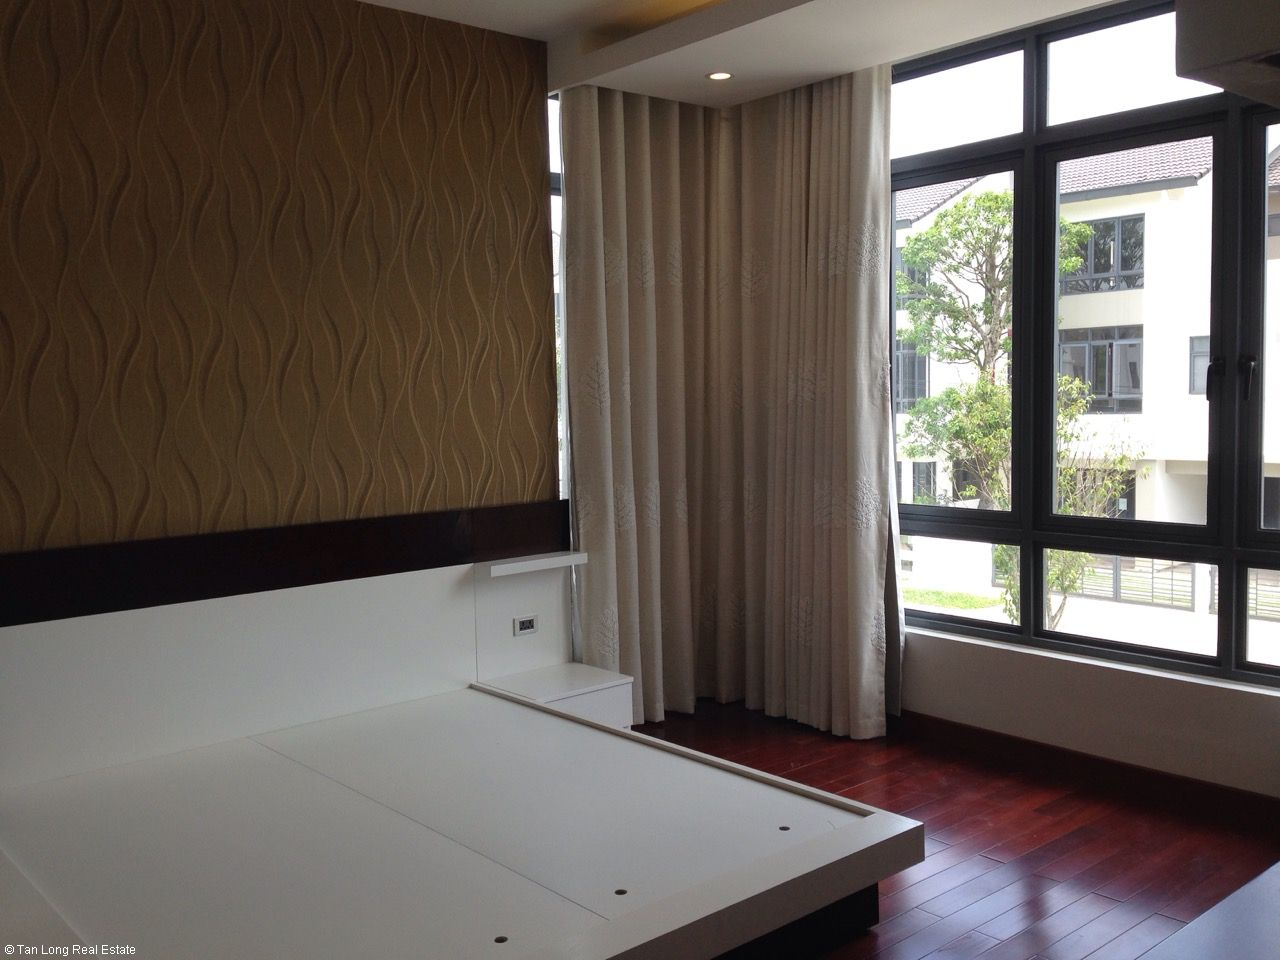 Furnished 05 bedrooms house for rent in Gamuda, Nguyen Xien street, Hoang Mai district. 7